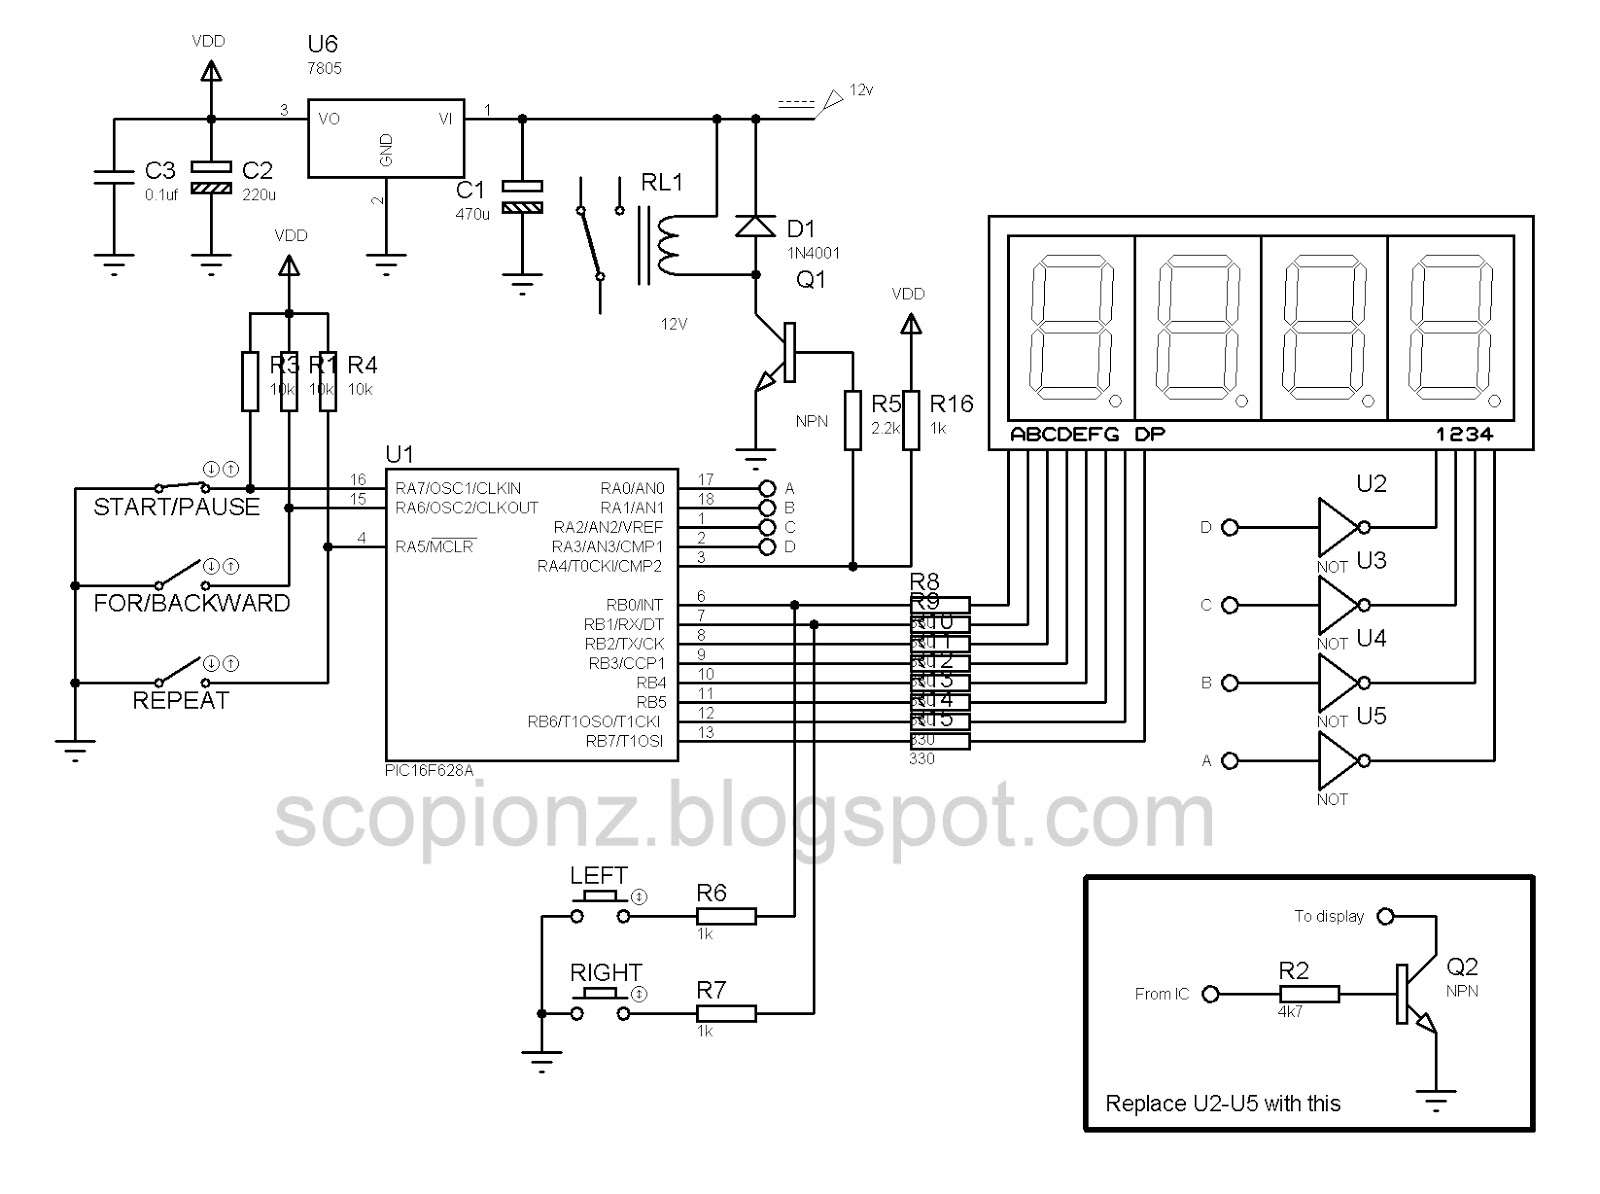 Scorpionz Electronic Circuits And Microcontroller Projects Am Radio Receiver Circuit Design Project Schematic Programmable Digital Ssd Timer Pic16f628a